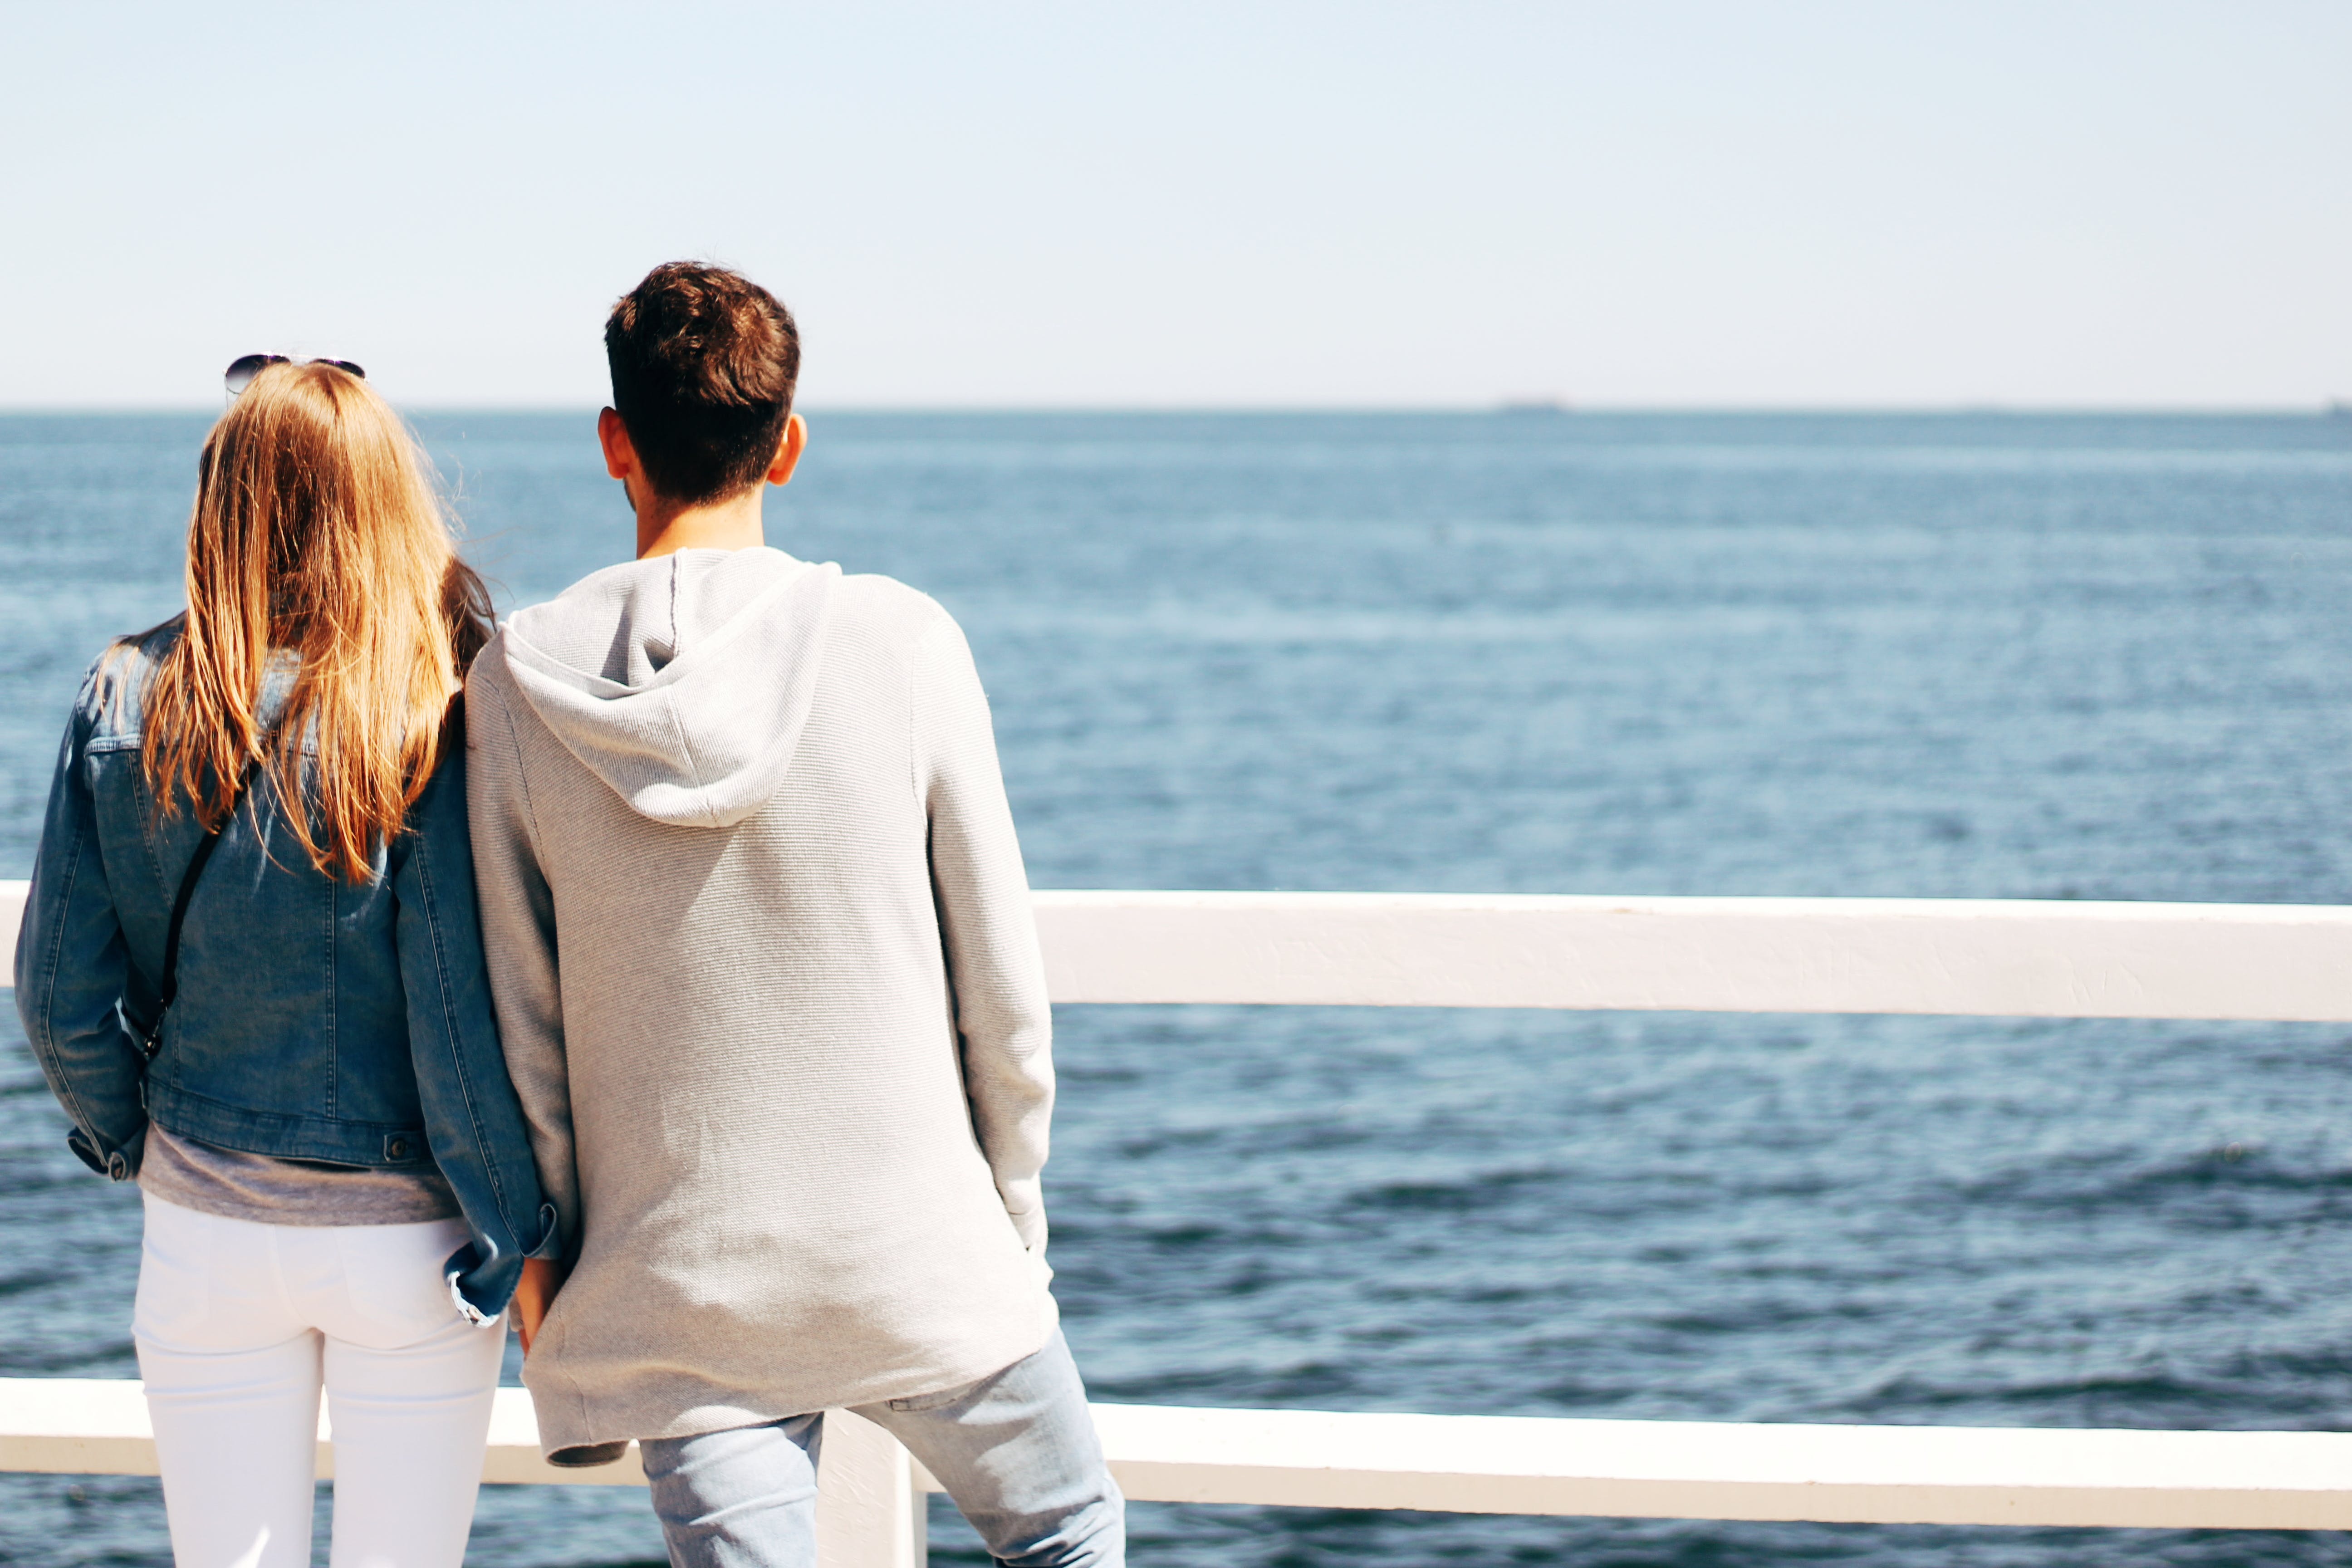 Man and Woman Beside Wooden Hand Rail Beside Body of Water